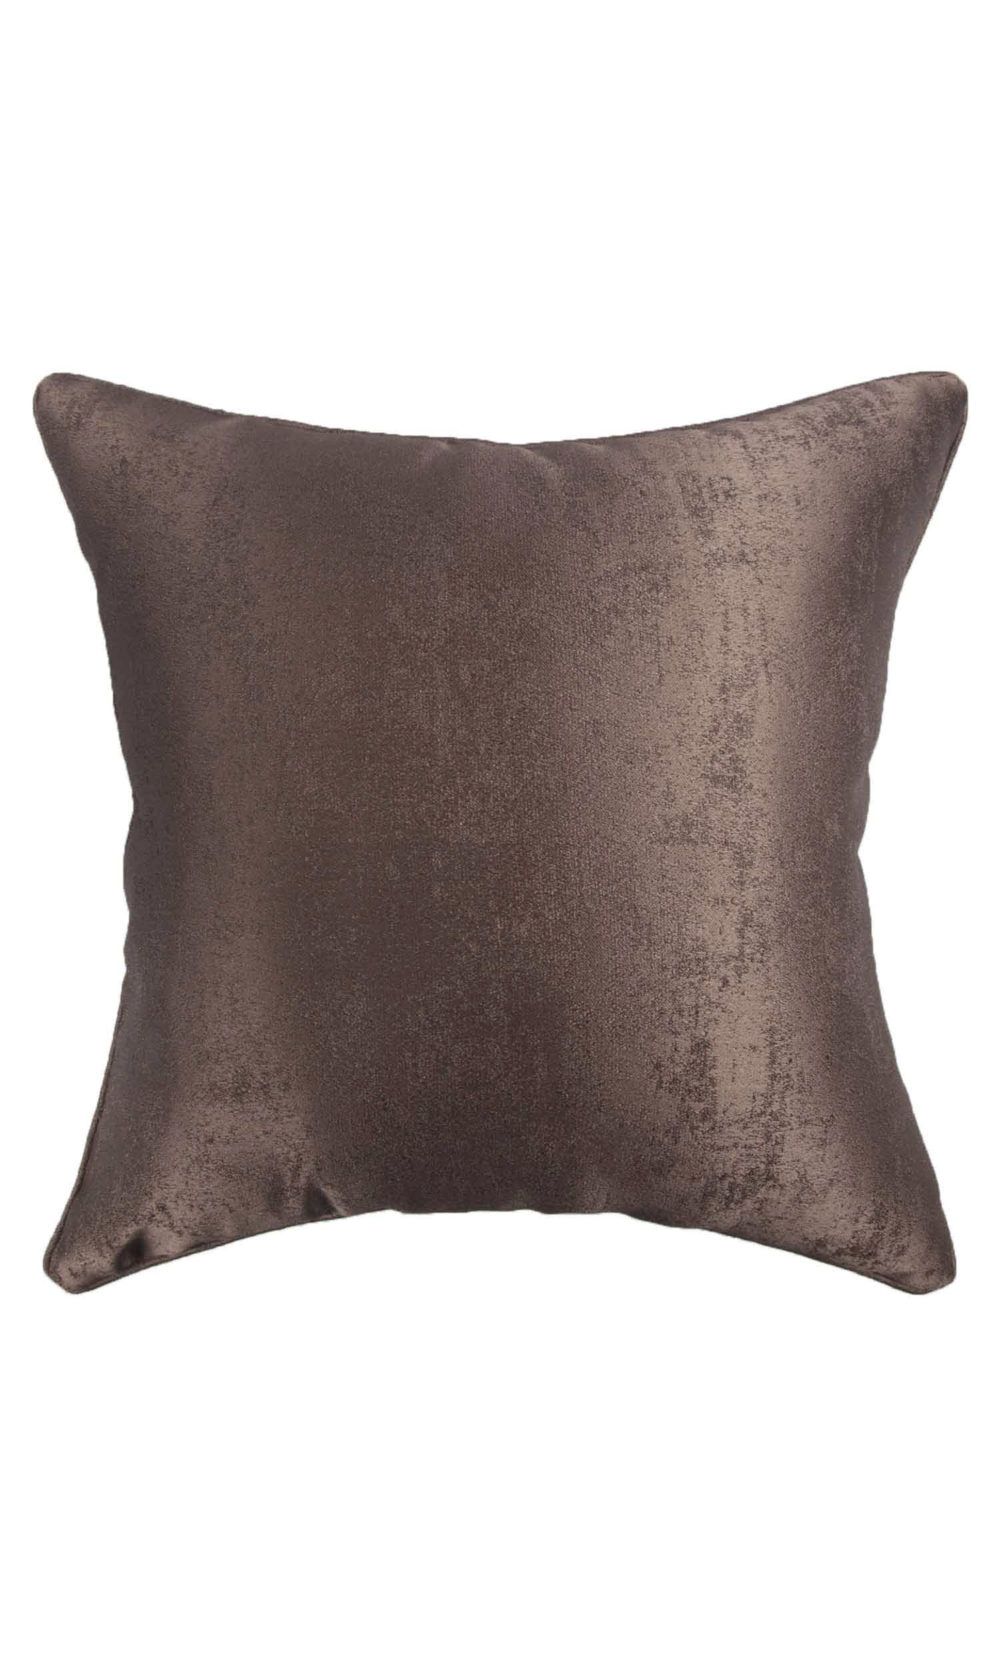 Brown Budget Cushion Cover